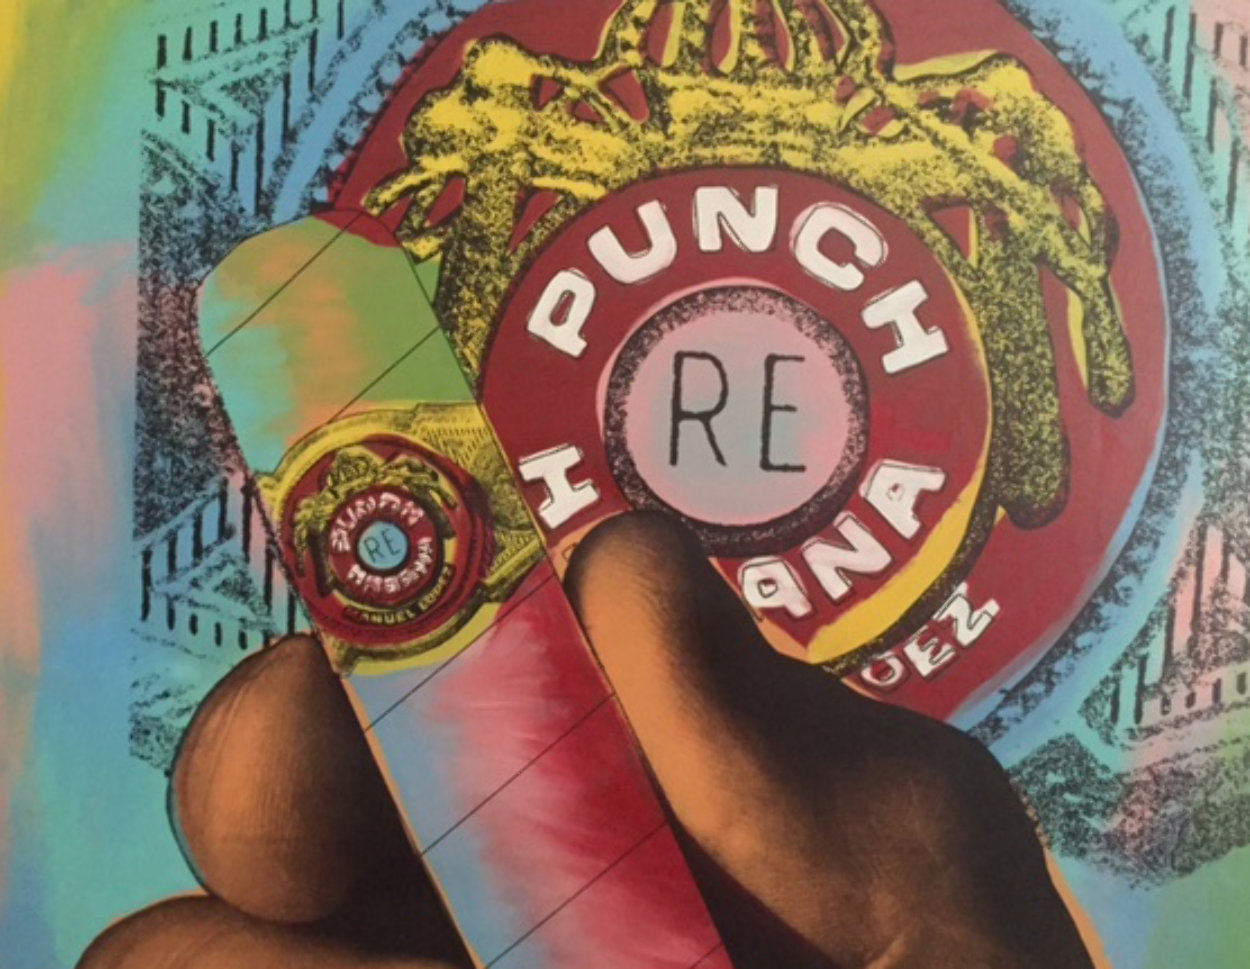 Punch Cigar (Large) Limited Edition Print by Steve Kaufman